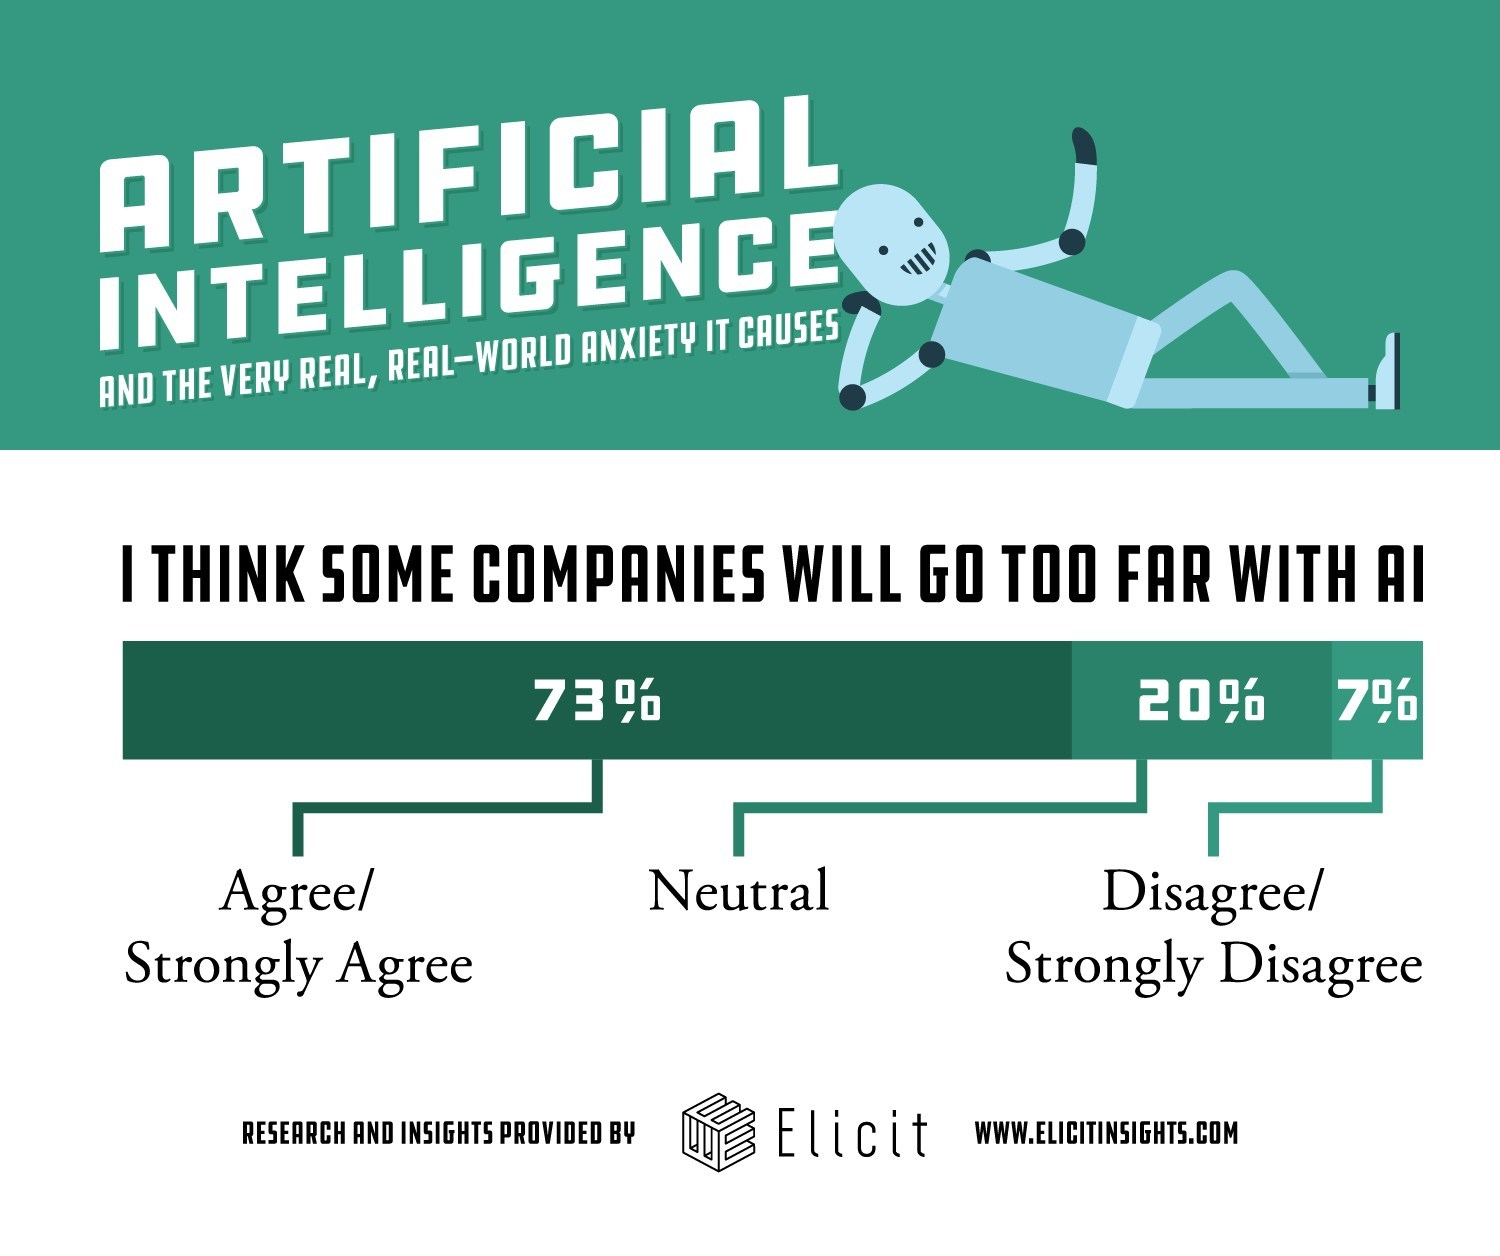 Nearly three-quarters of consumers think companies will go too far with artificial intelligence.